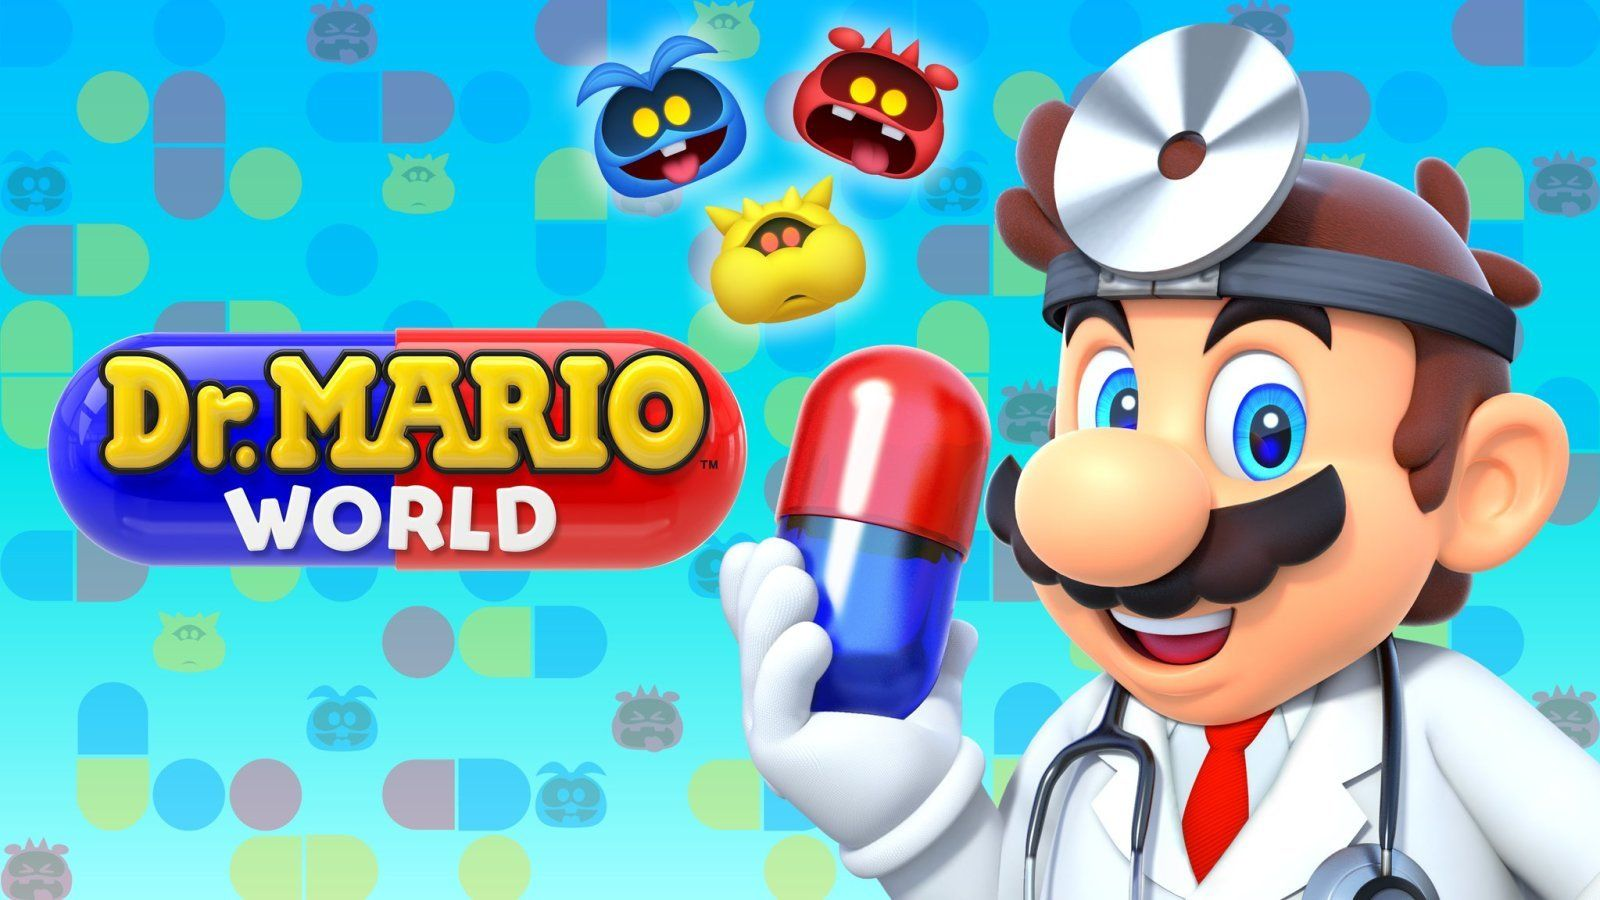 Dr. Mario World Ios games, Mobile game, Mario games